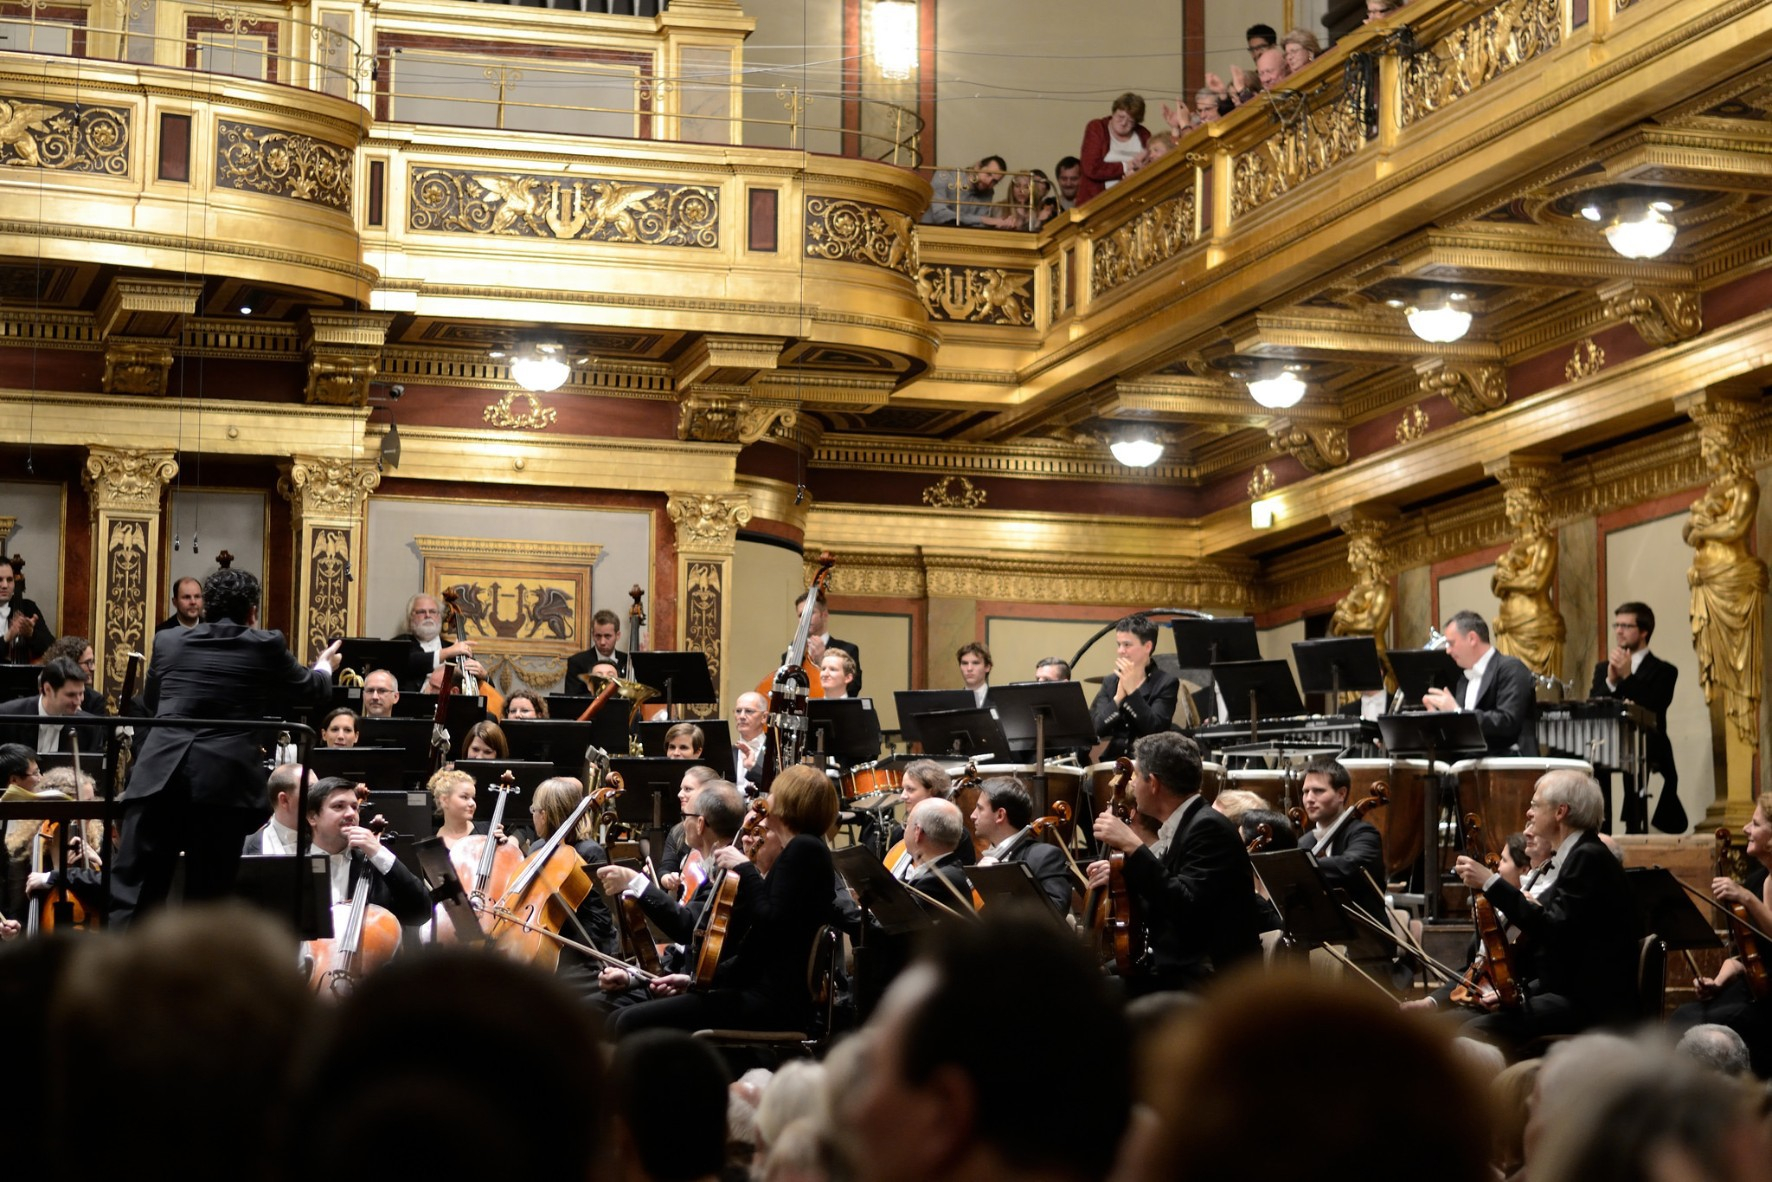 Why Vienna is a Major Destination for Classical Music Lovers